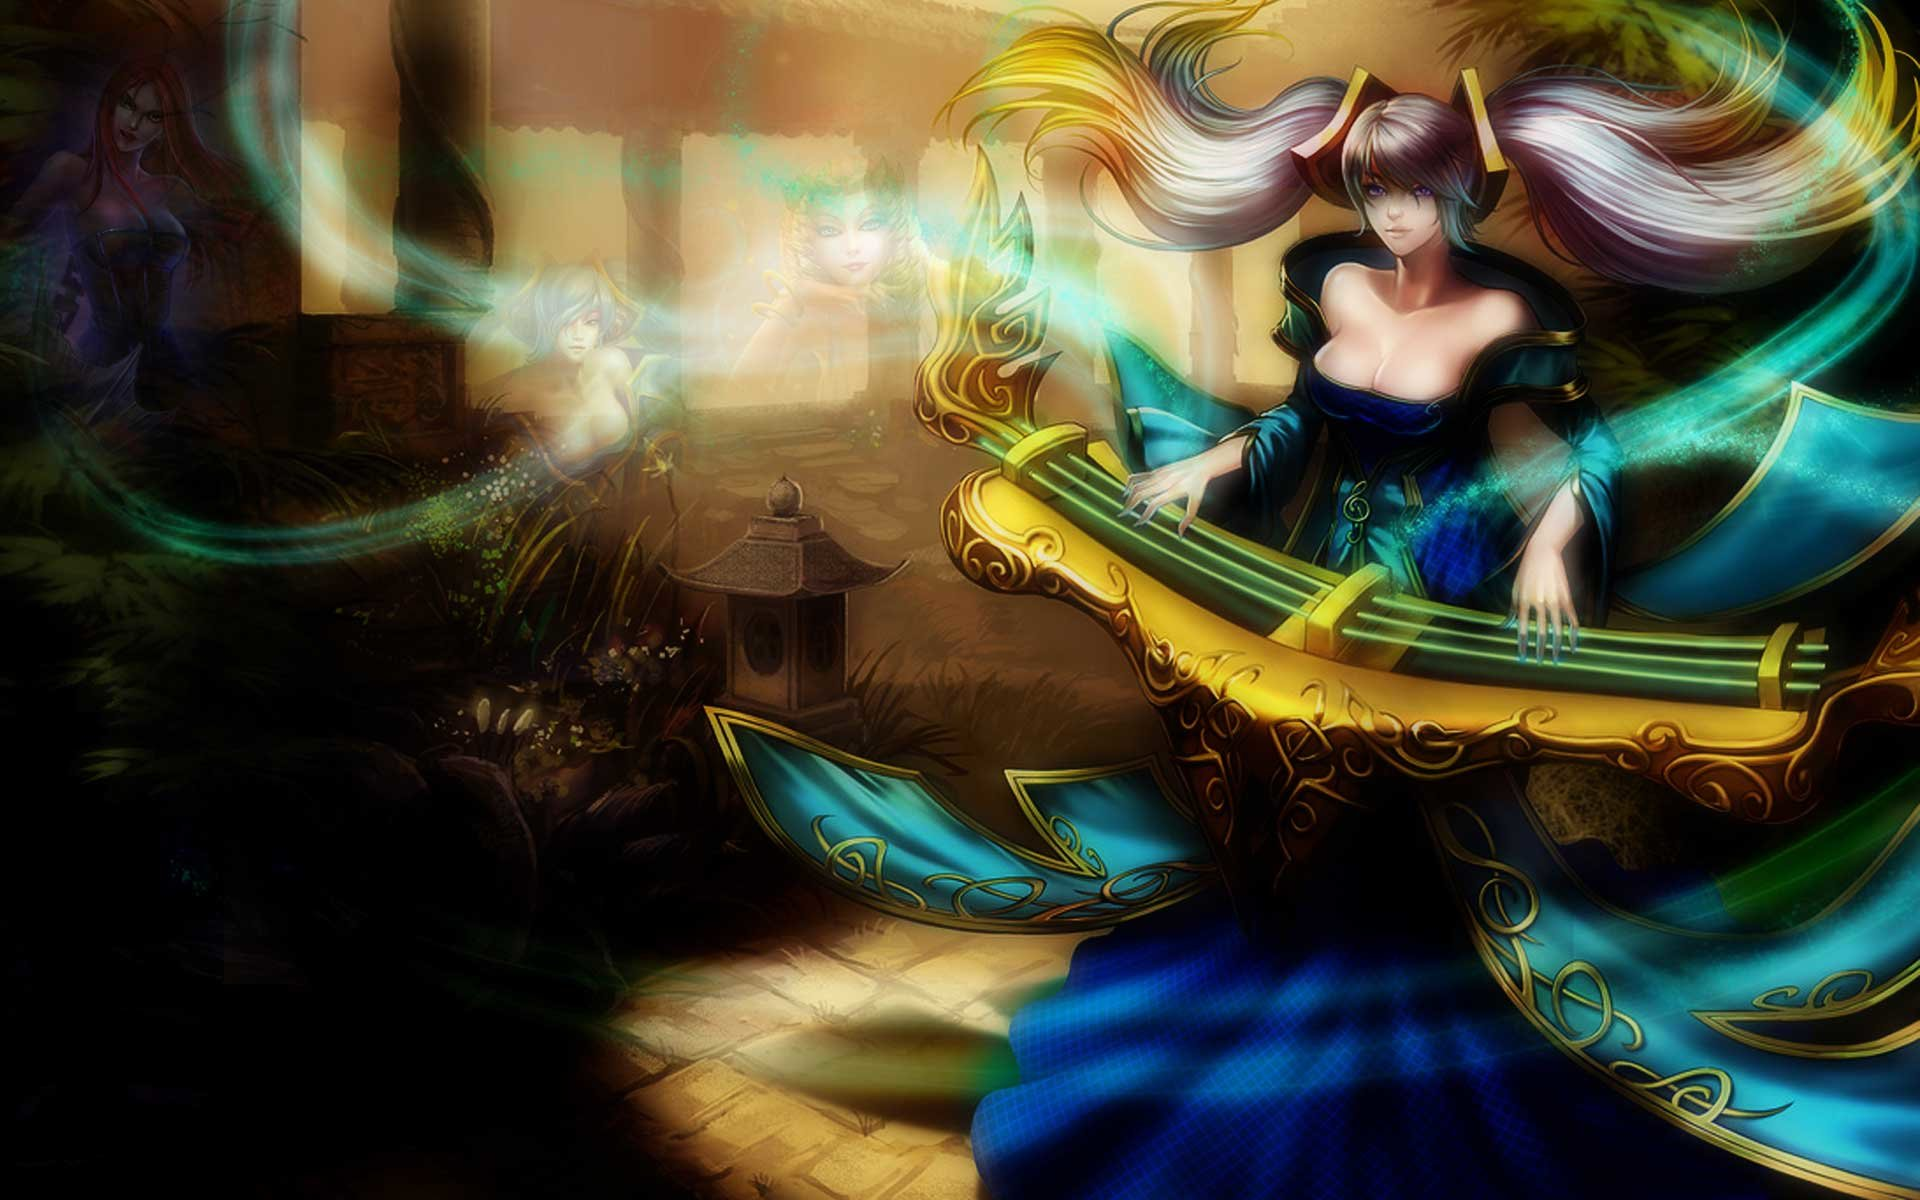 Dual Monitor Wallpaper League Of Legends: Sona (League Of Legends) Wallpapers HD For Desktop Backgrounds